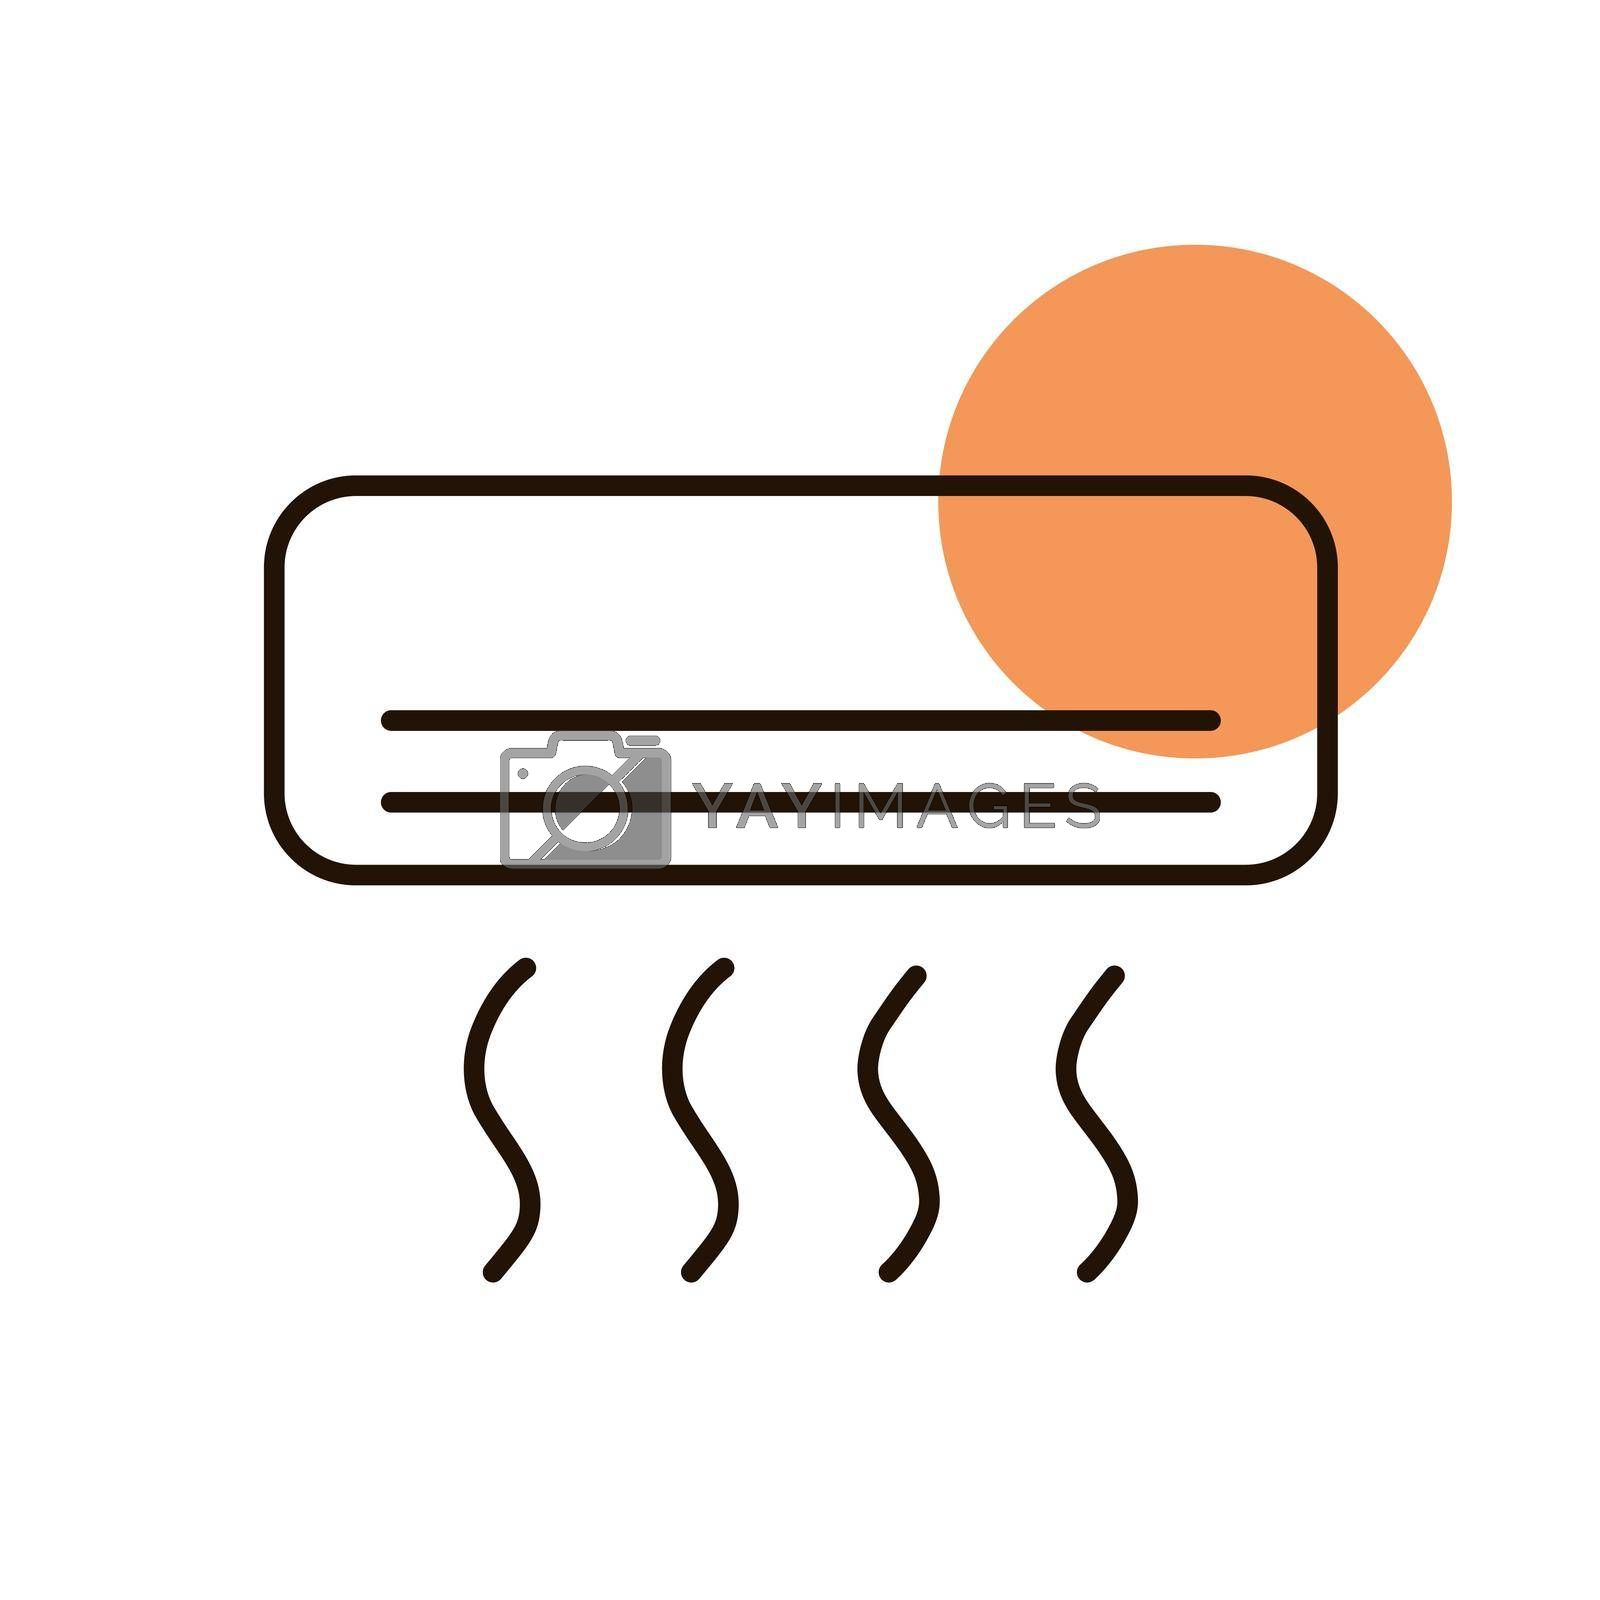 Split-system air conditioner flat vector icon. Graph symbol for household electric web site and apps design, logo, app, UI